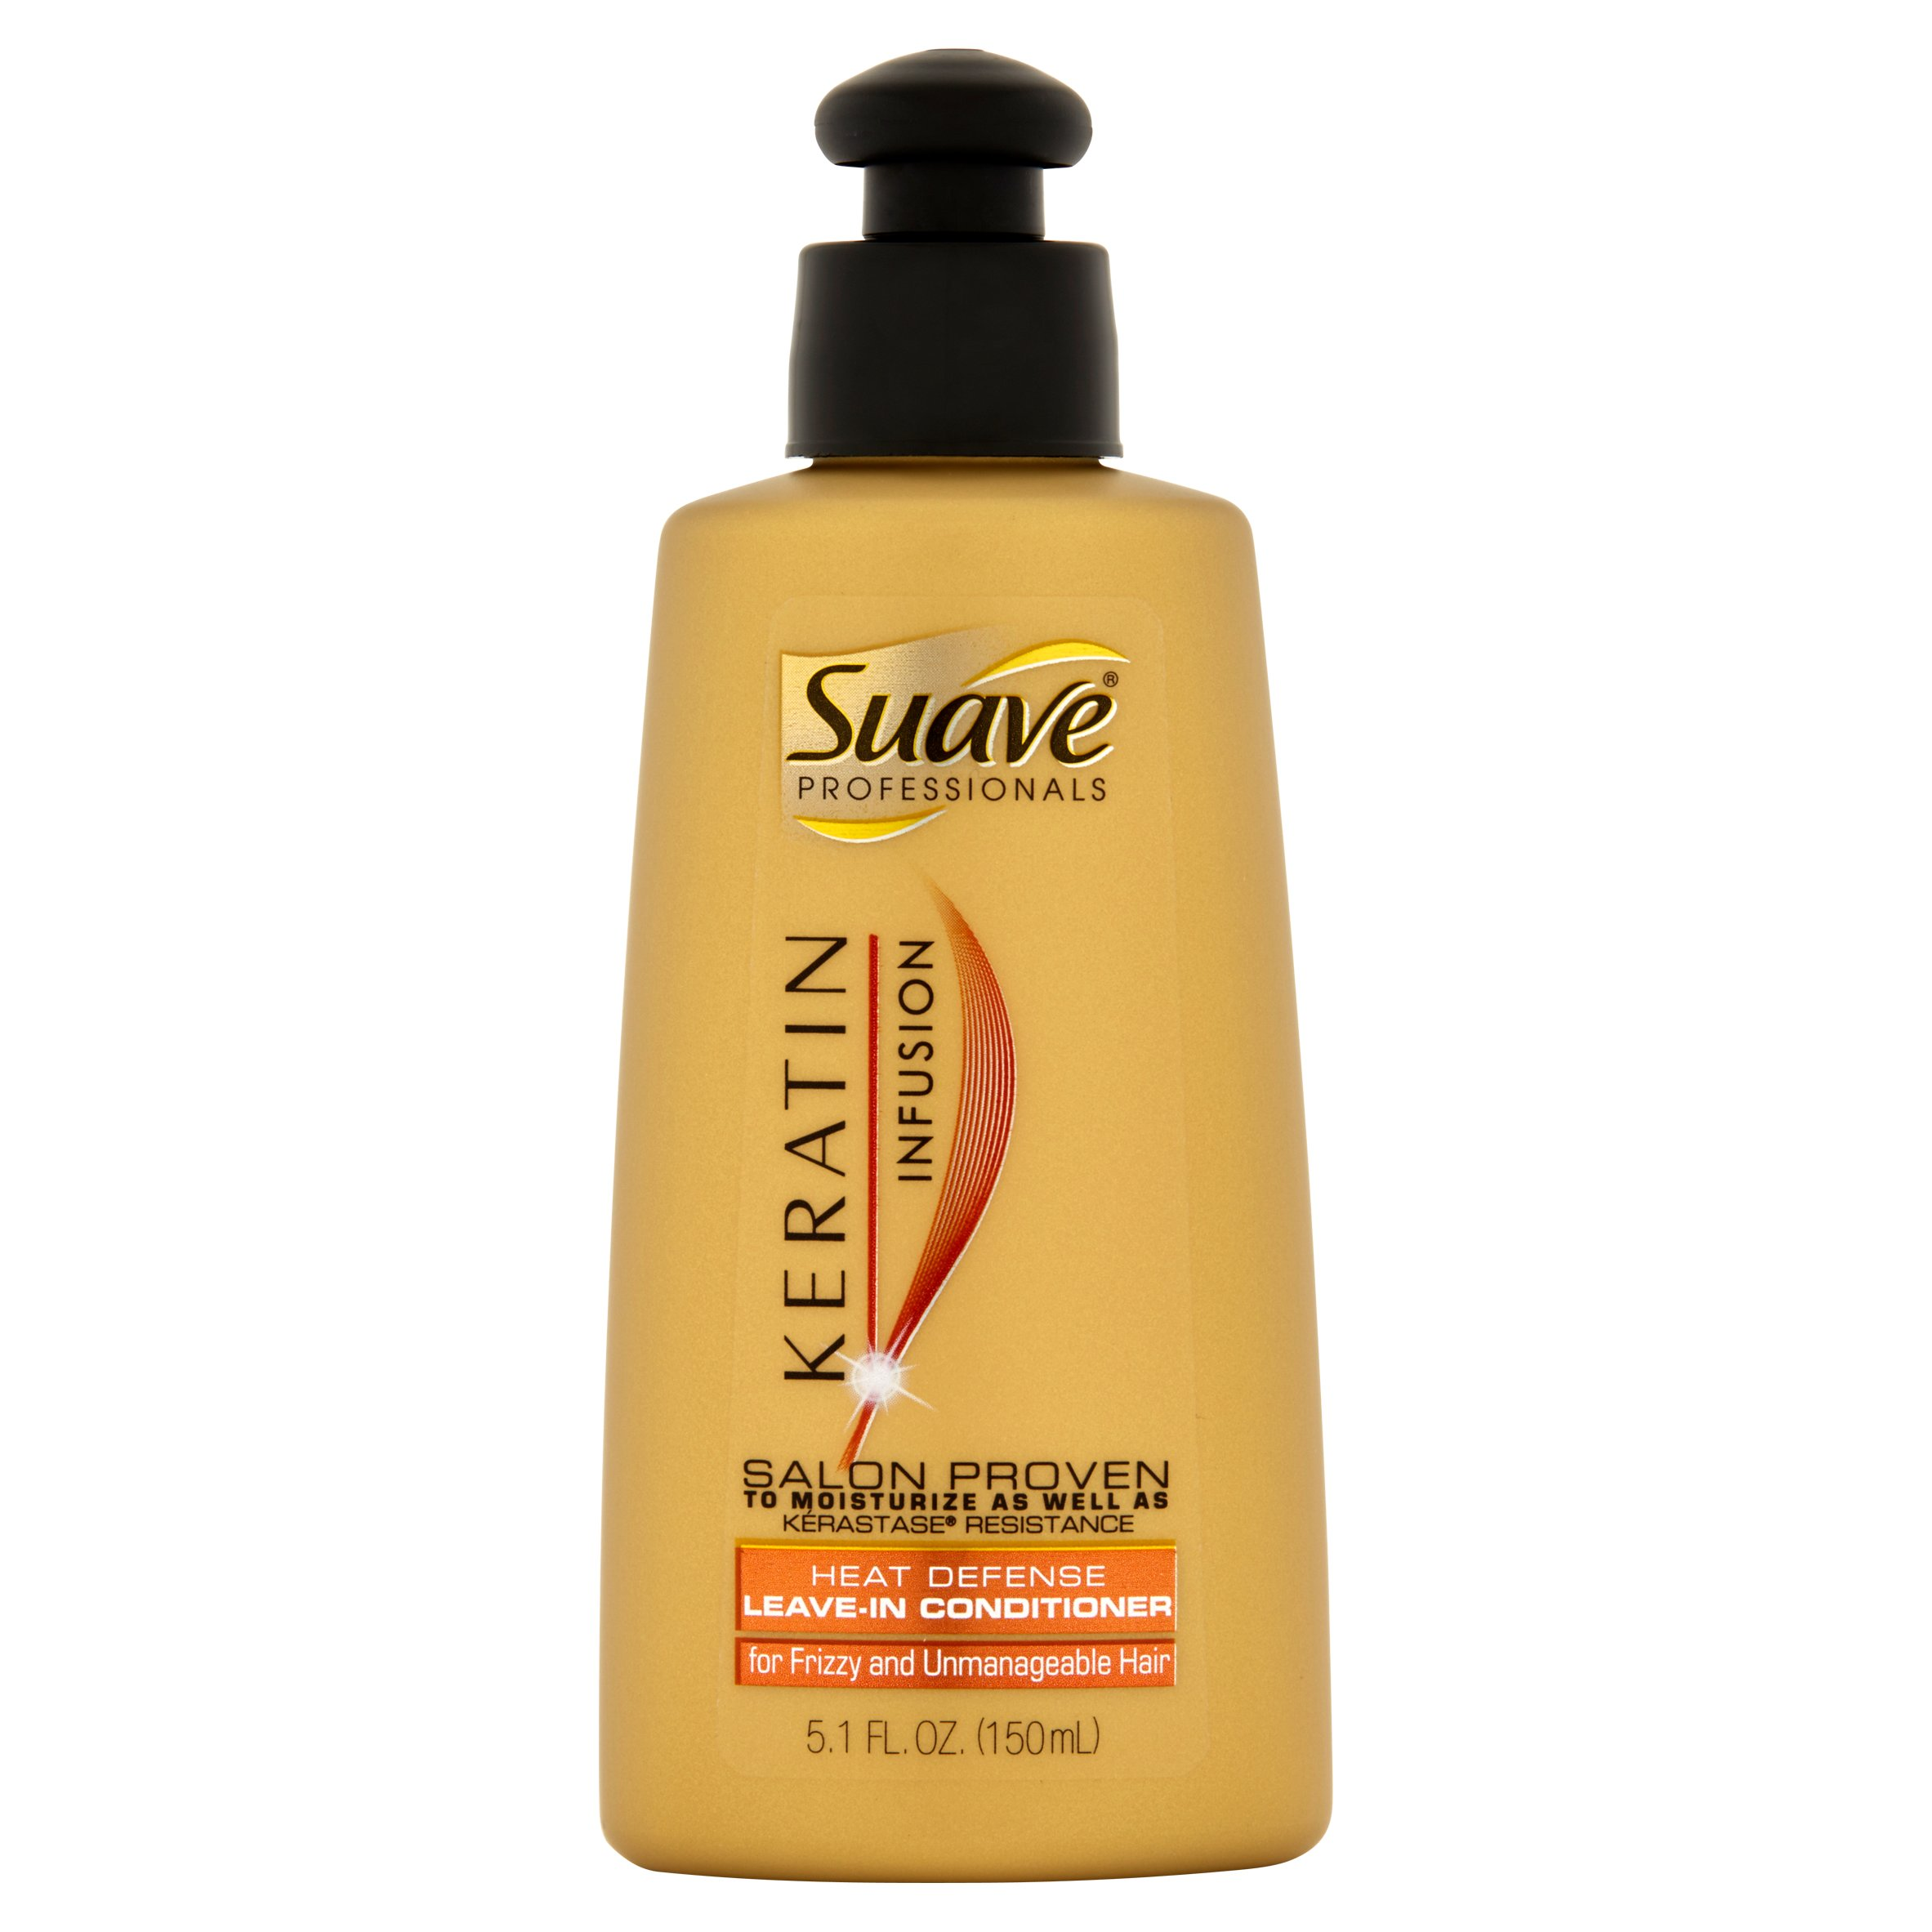 Suave Professionals Keratin Infusion Heat Defense Conditioner, 5.1 oz